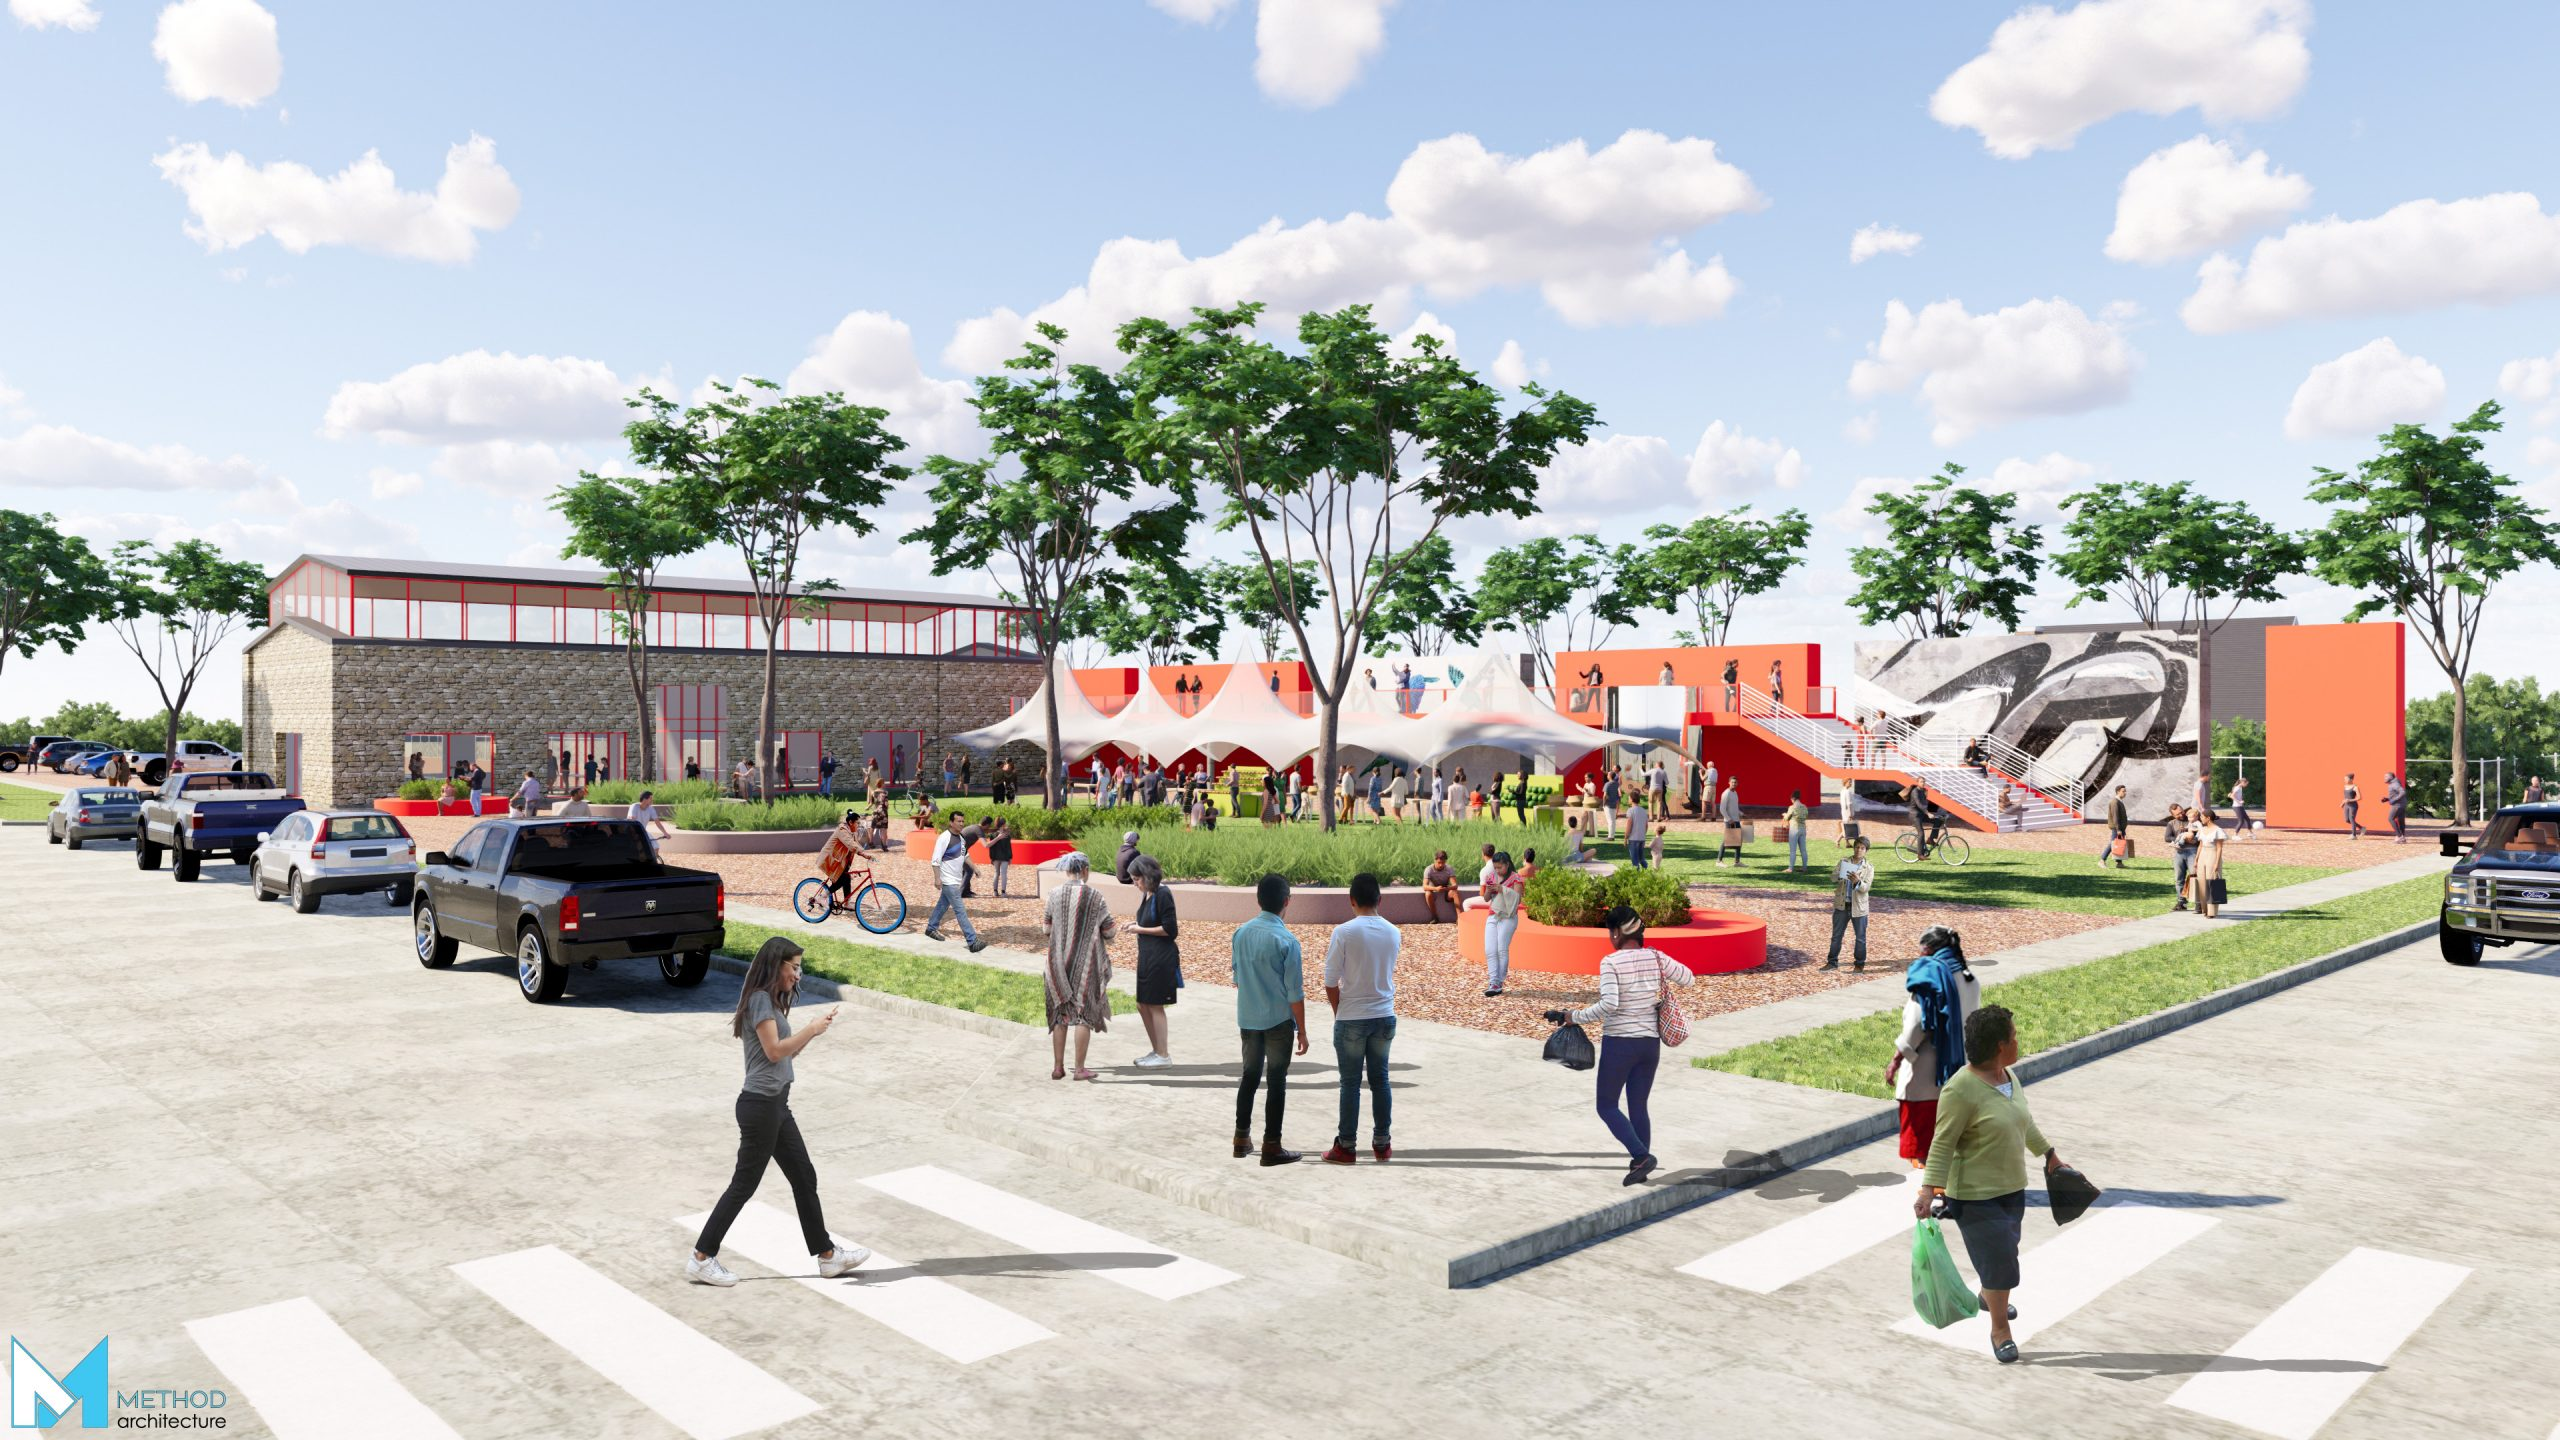 Creating thriving Native communities through reimagining public spaces